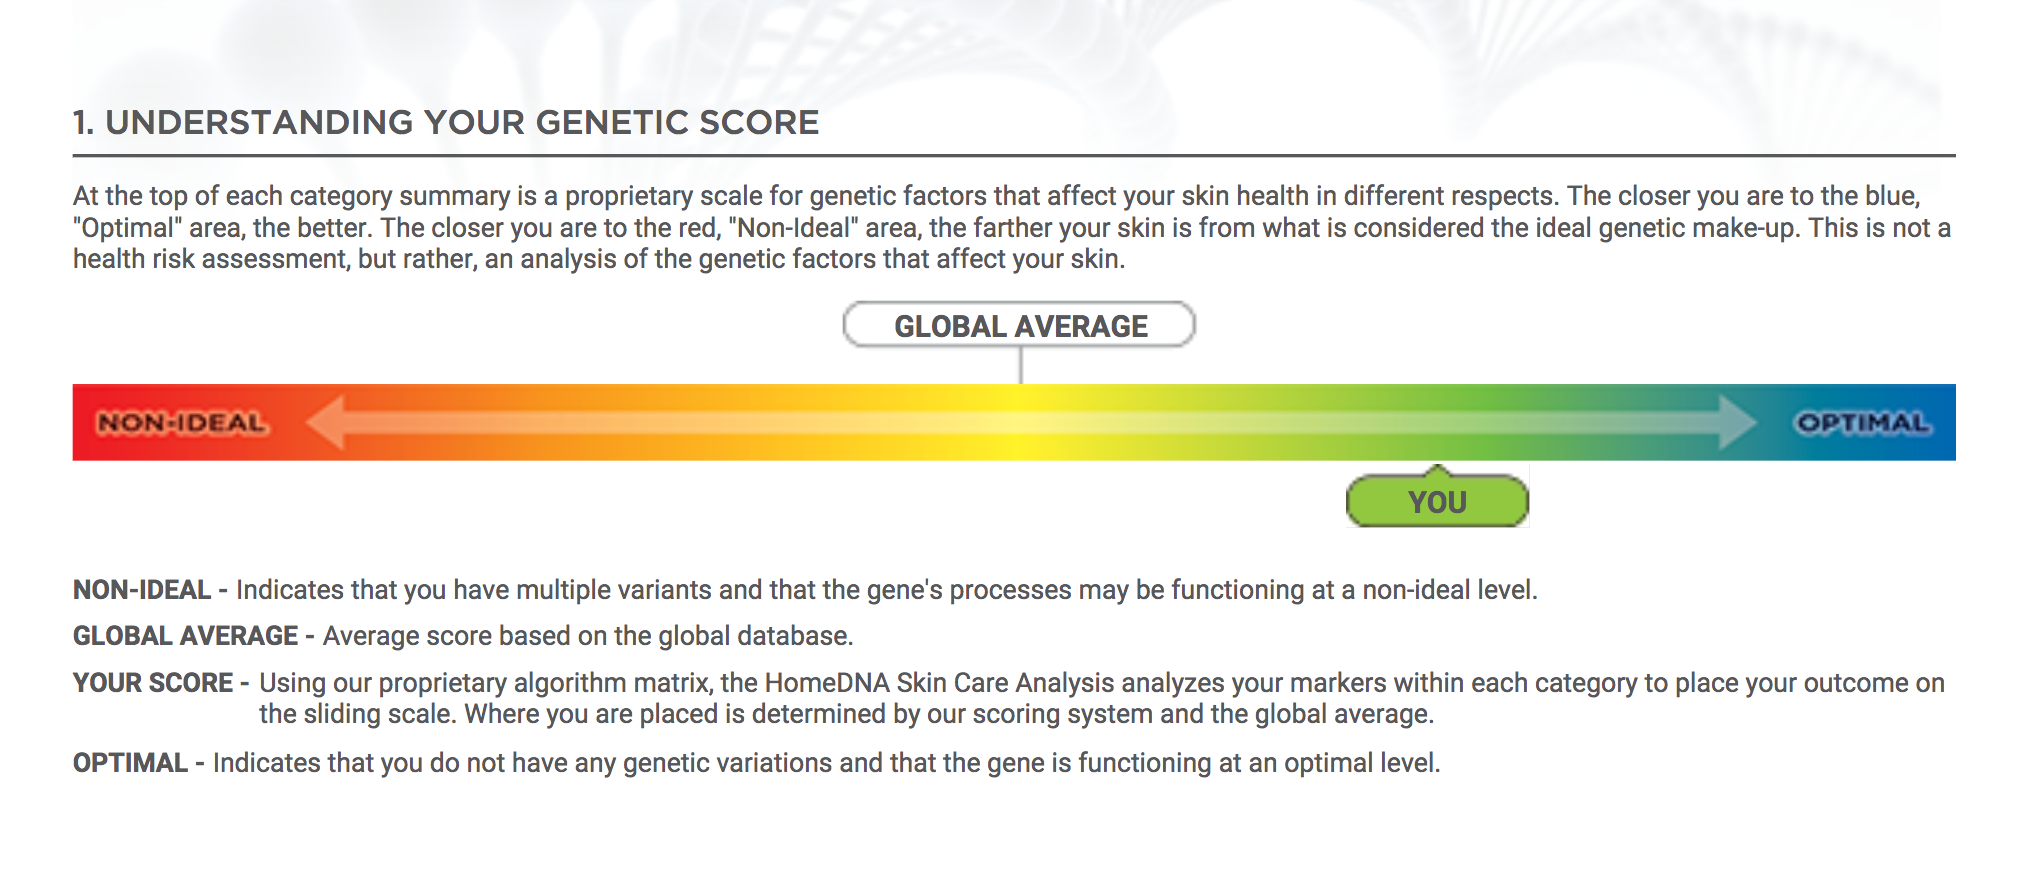 Lifestyle blogger Roxanne of Glass of Glam's review of the HomeDNA Skin Care Analysis